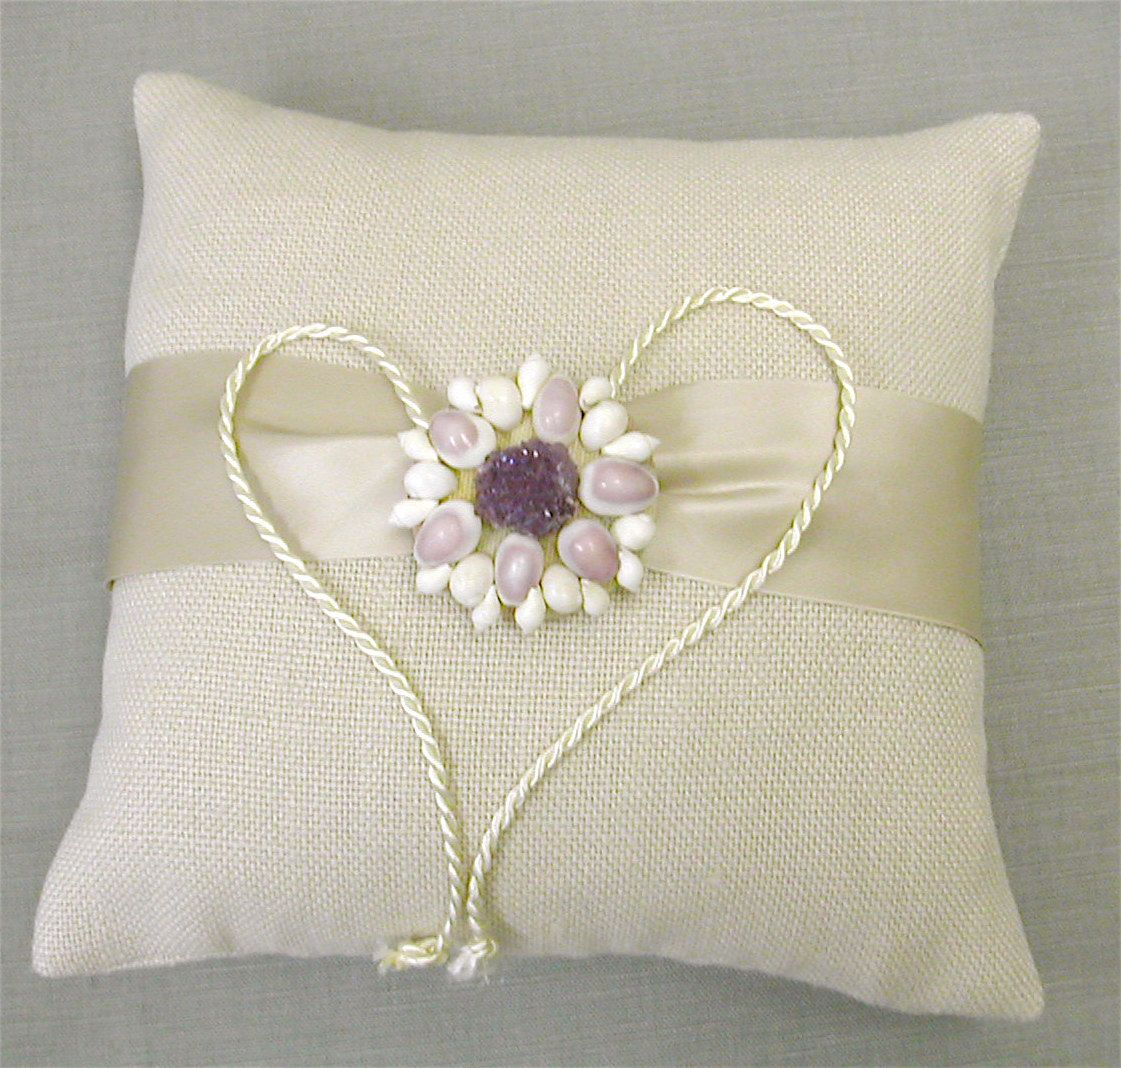 """Beach Ring Bearer Pillow.Perfect for a beach-themed wedding.  This beautiful pillow is made with sand-colored cotton fabric and finished with a wide satin sash.  The centerpiece is a fabric covered button adorned with real seashells and a gorgeous piece of amethyst druzy.Beachy and stylish!Approximately 8"""" square. $55.00"""